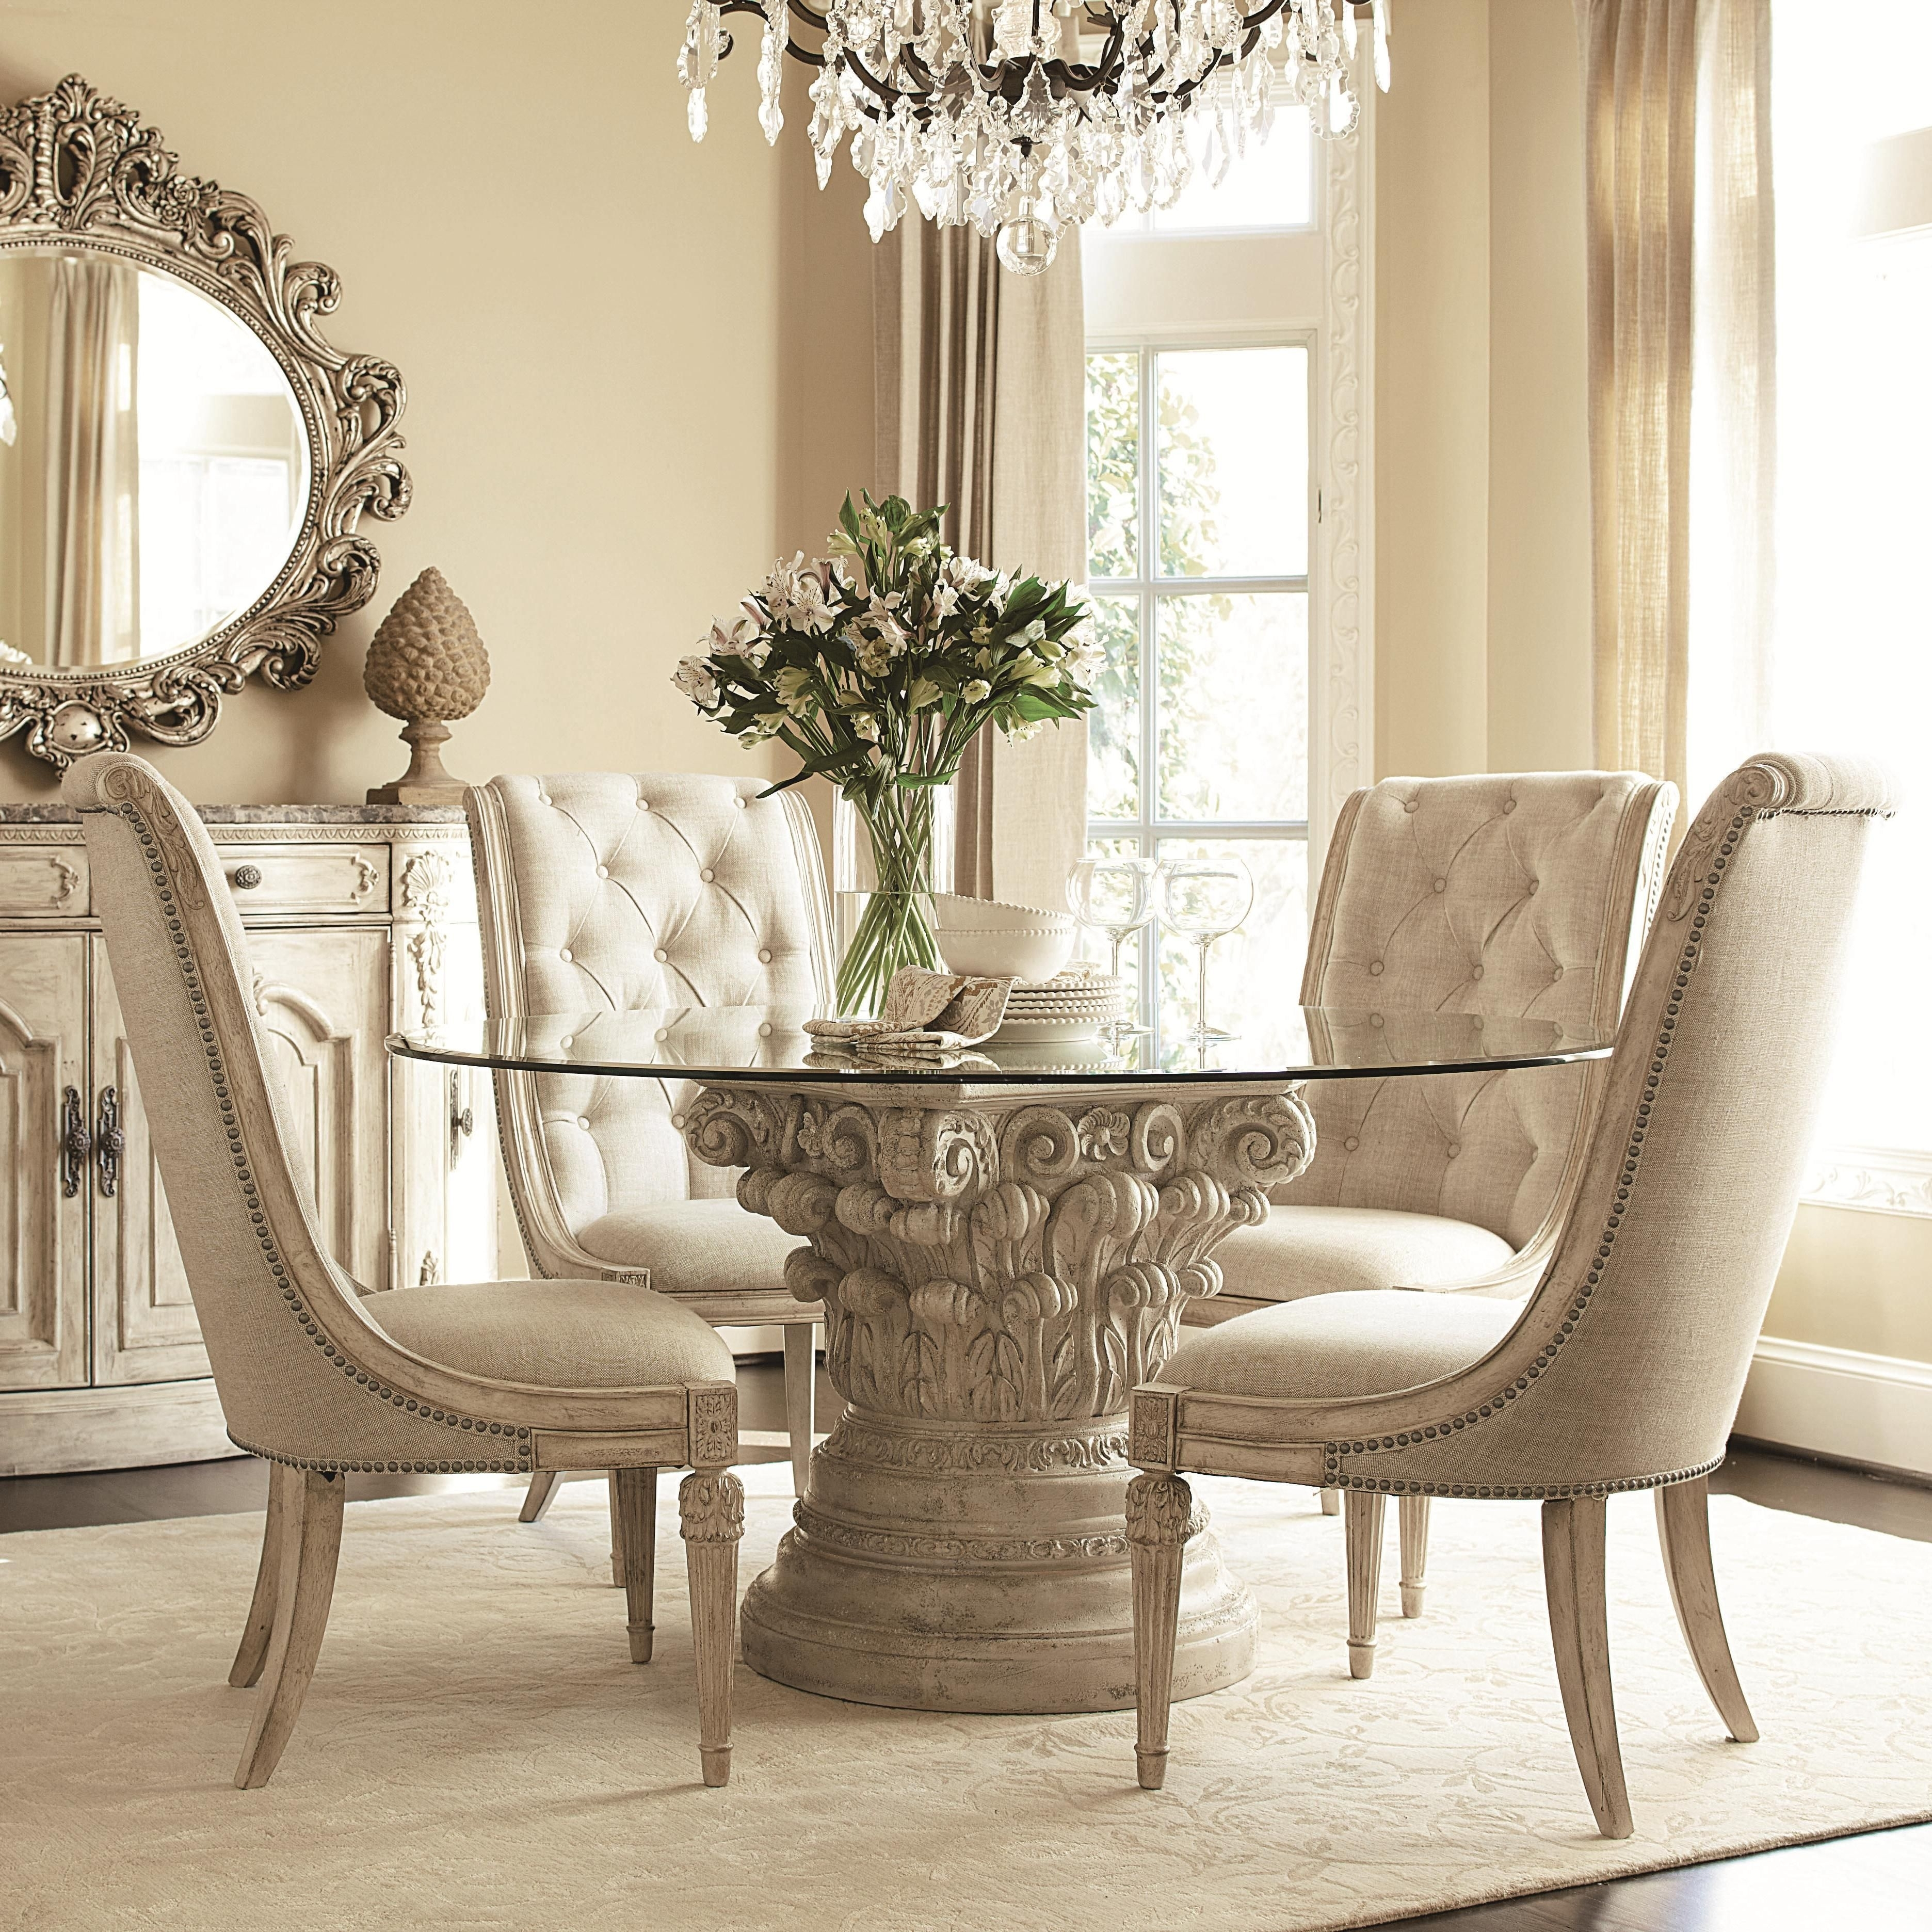 Jessica Mcclintock Home – The Boutique Collection 5 Piece Round Intended For Most Recently Released Market 6 Piece Dining Sets With Host And Side Chairs (Image 13 of 20)